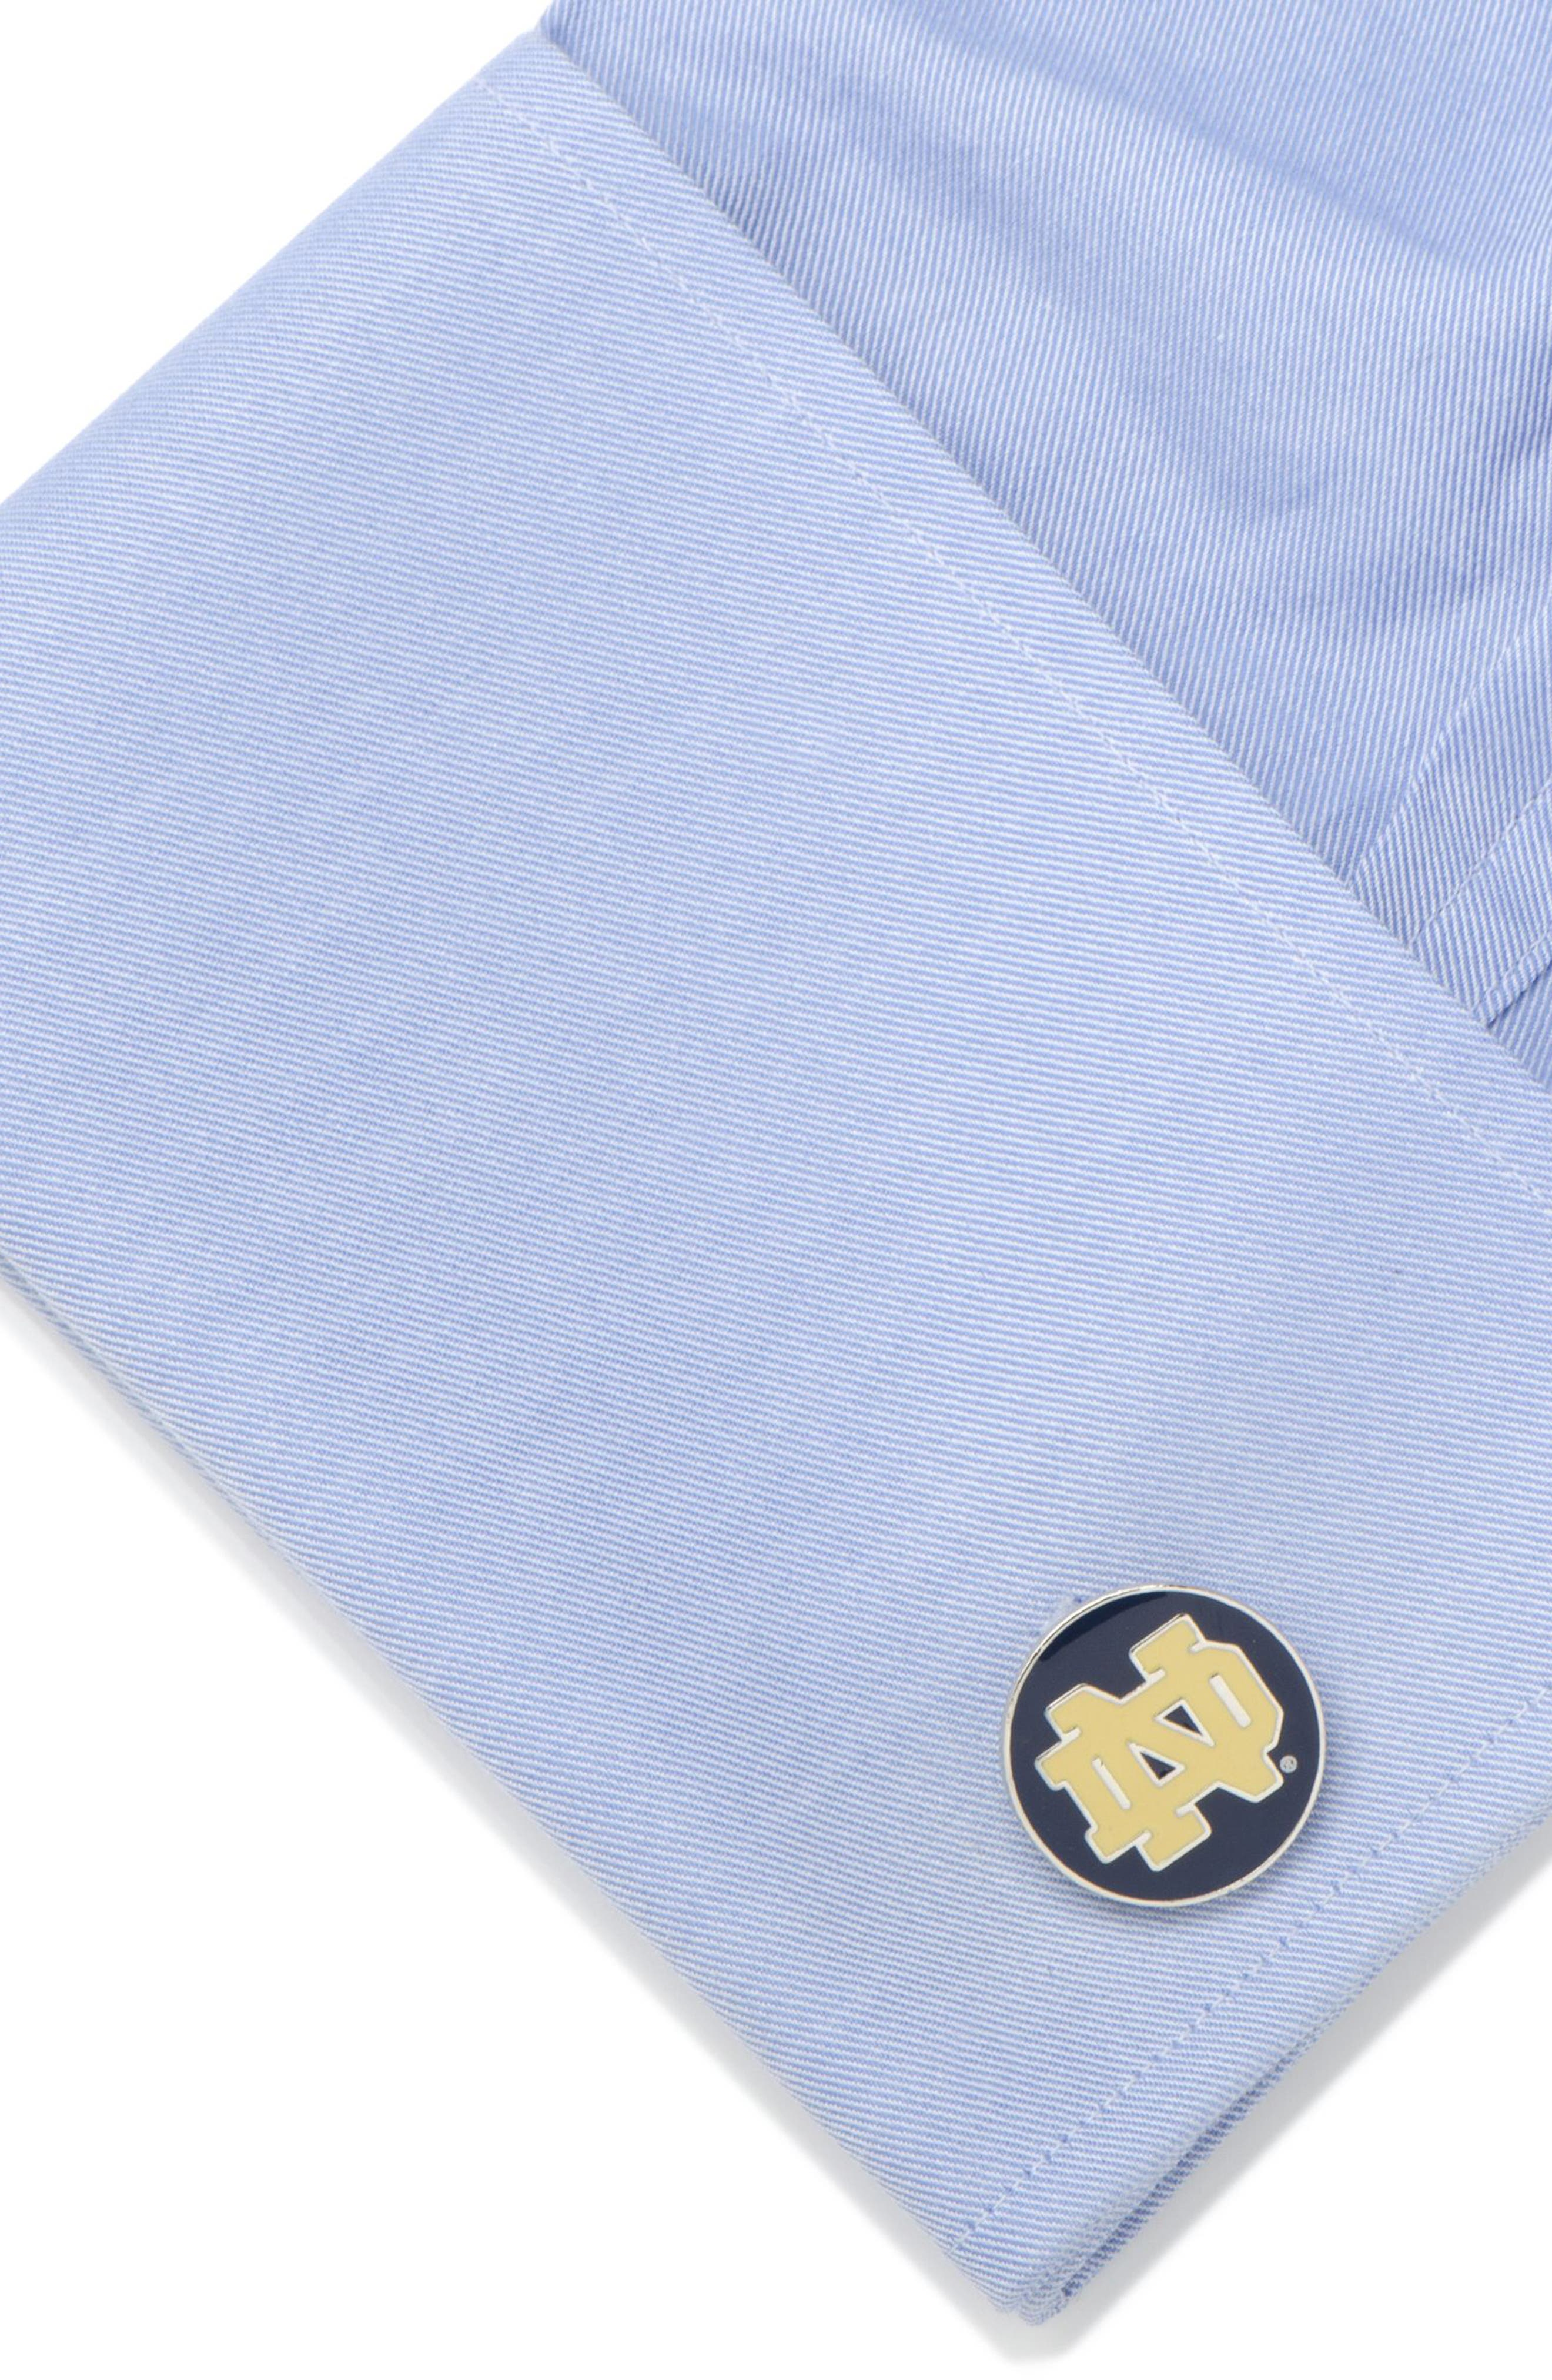 Notre Dame Cuff Links,                             Alternate thumbnail 3, color,                             NAVY